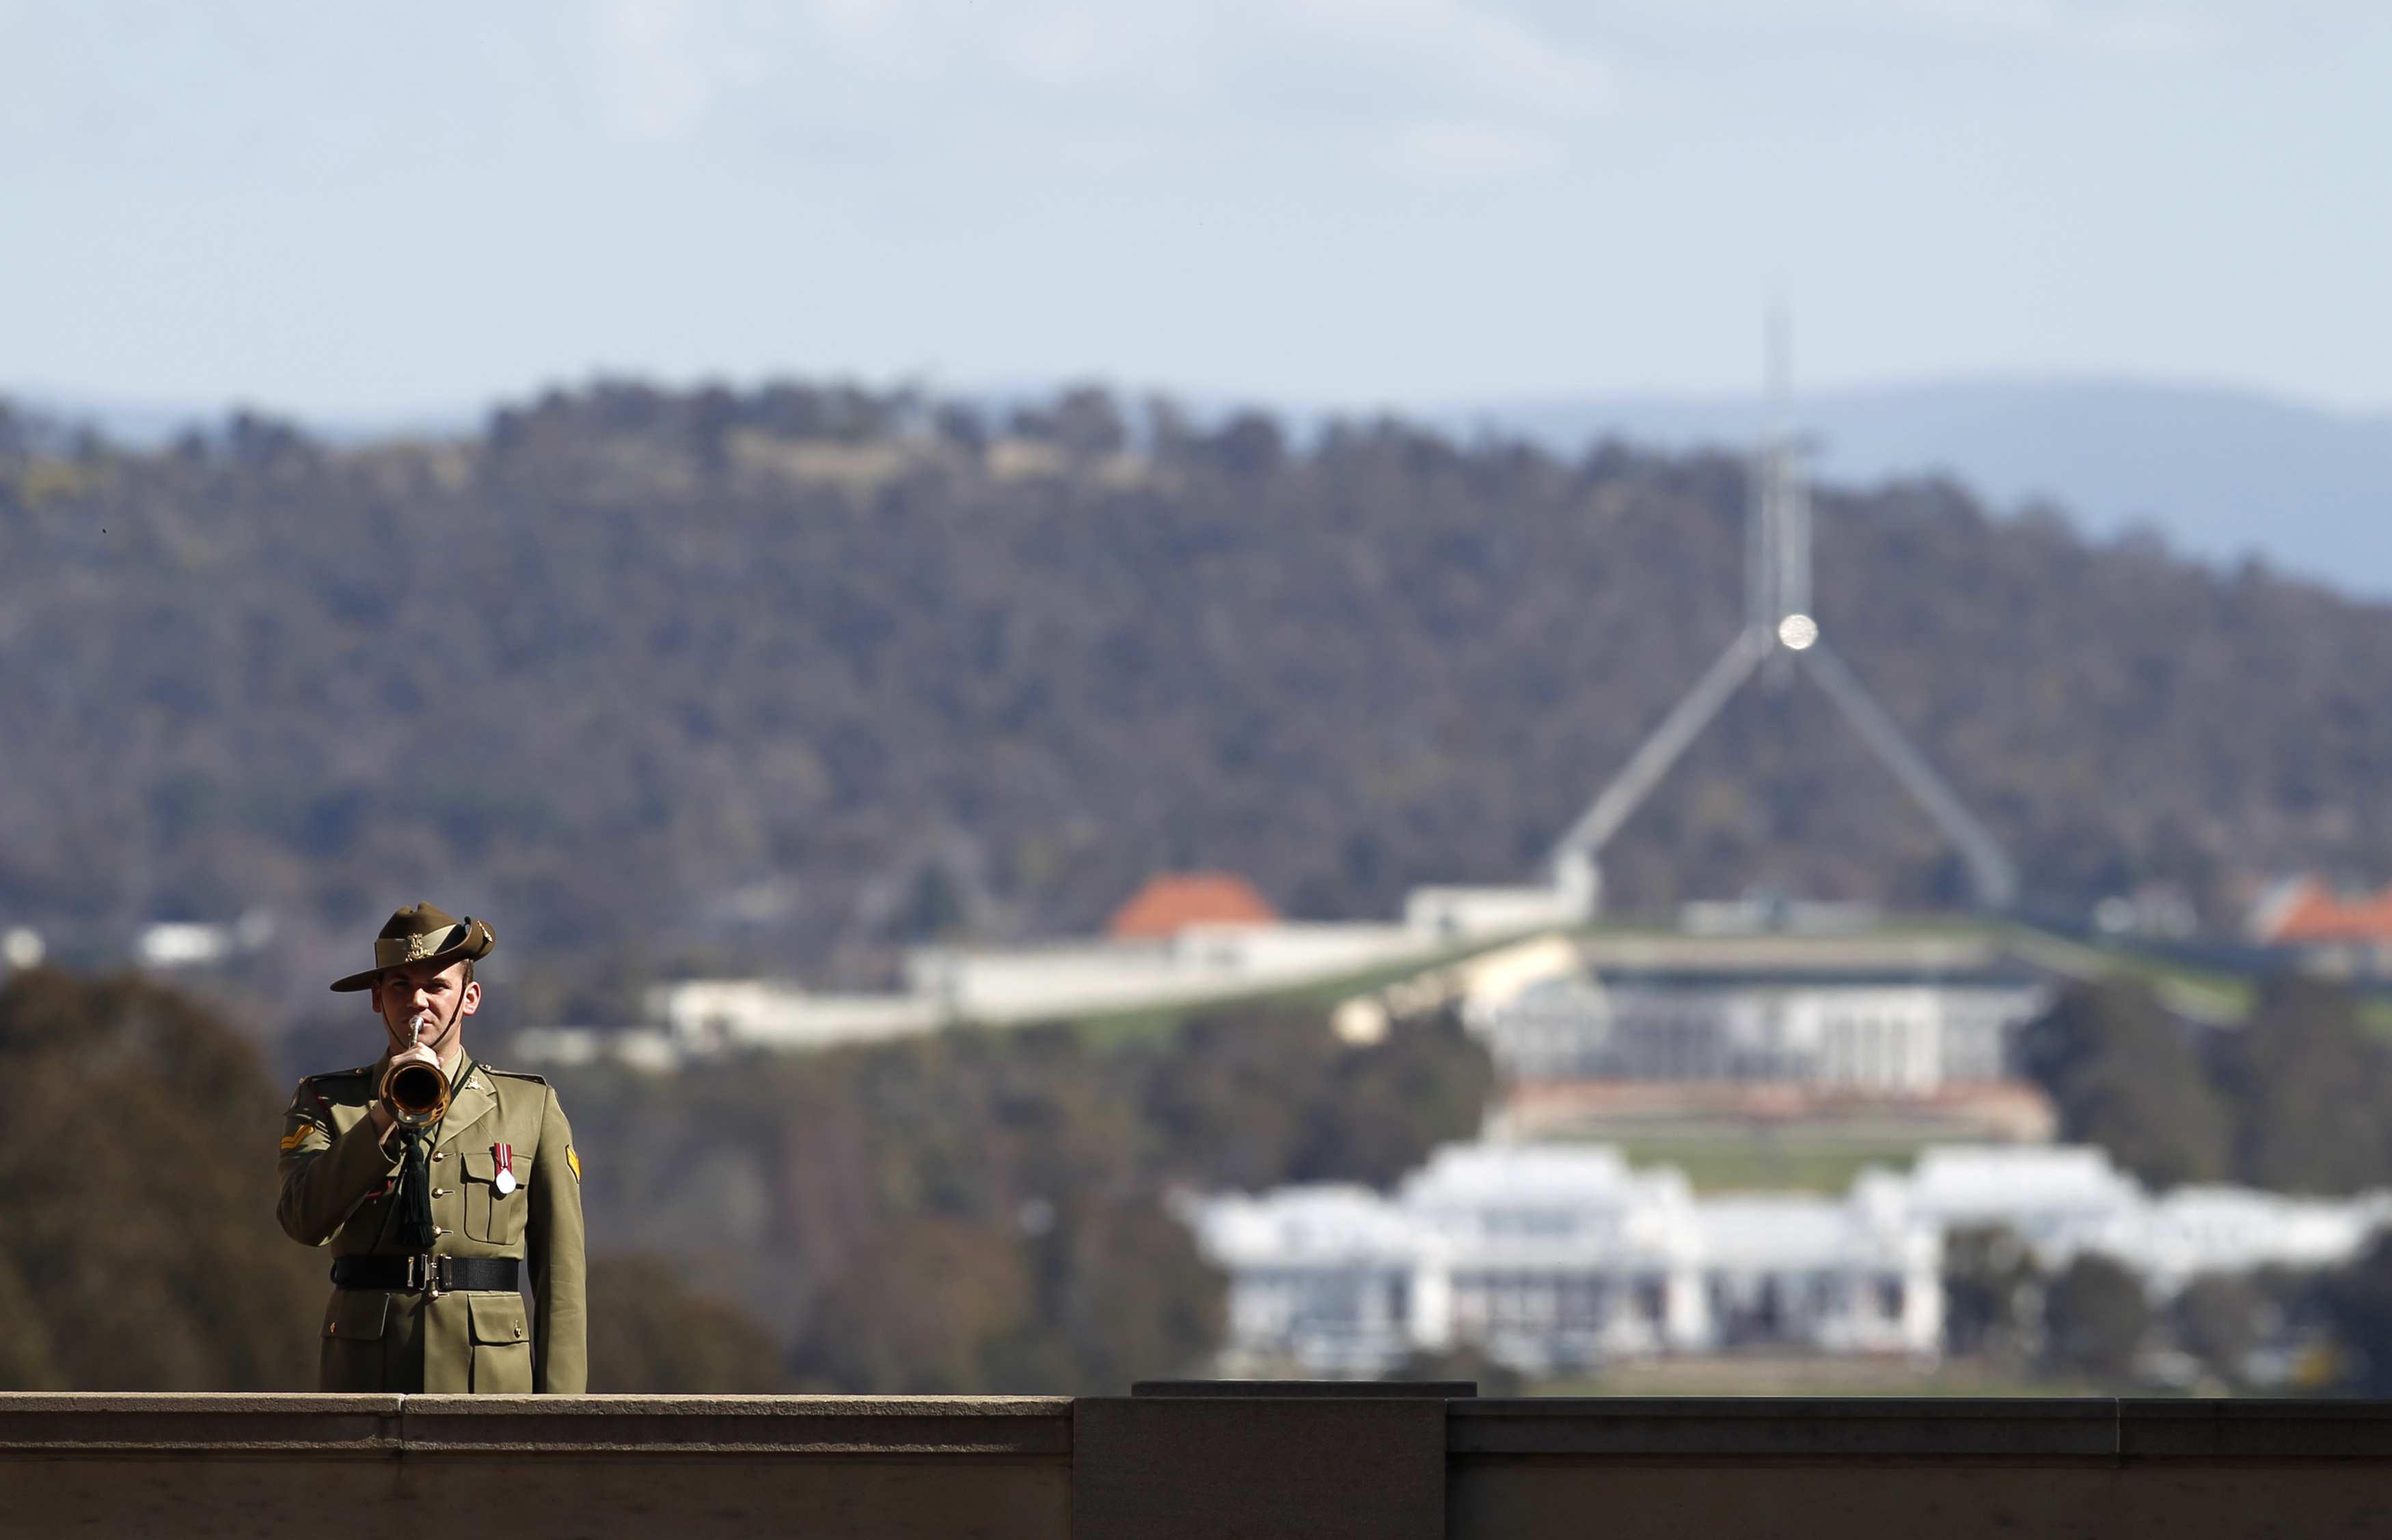 Focussing on foreign policy for the sake of Australia's future